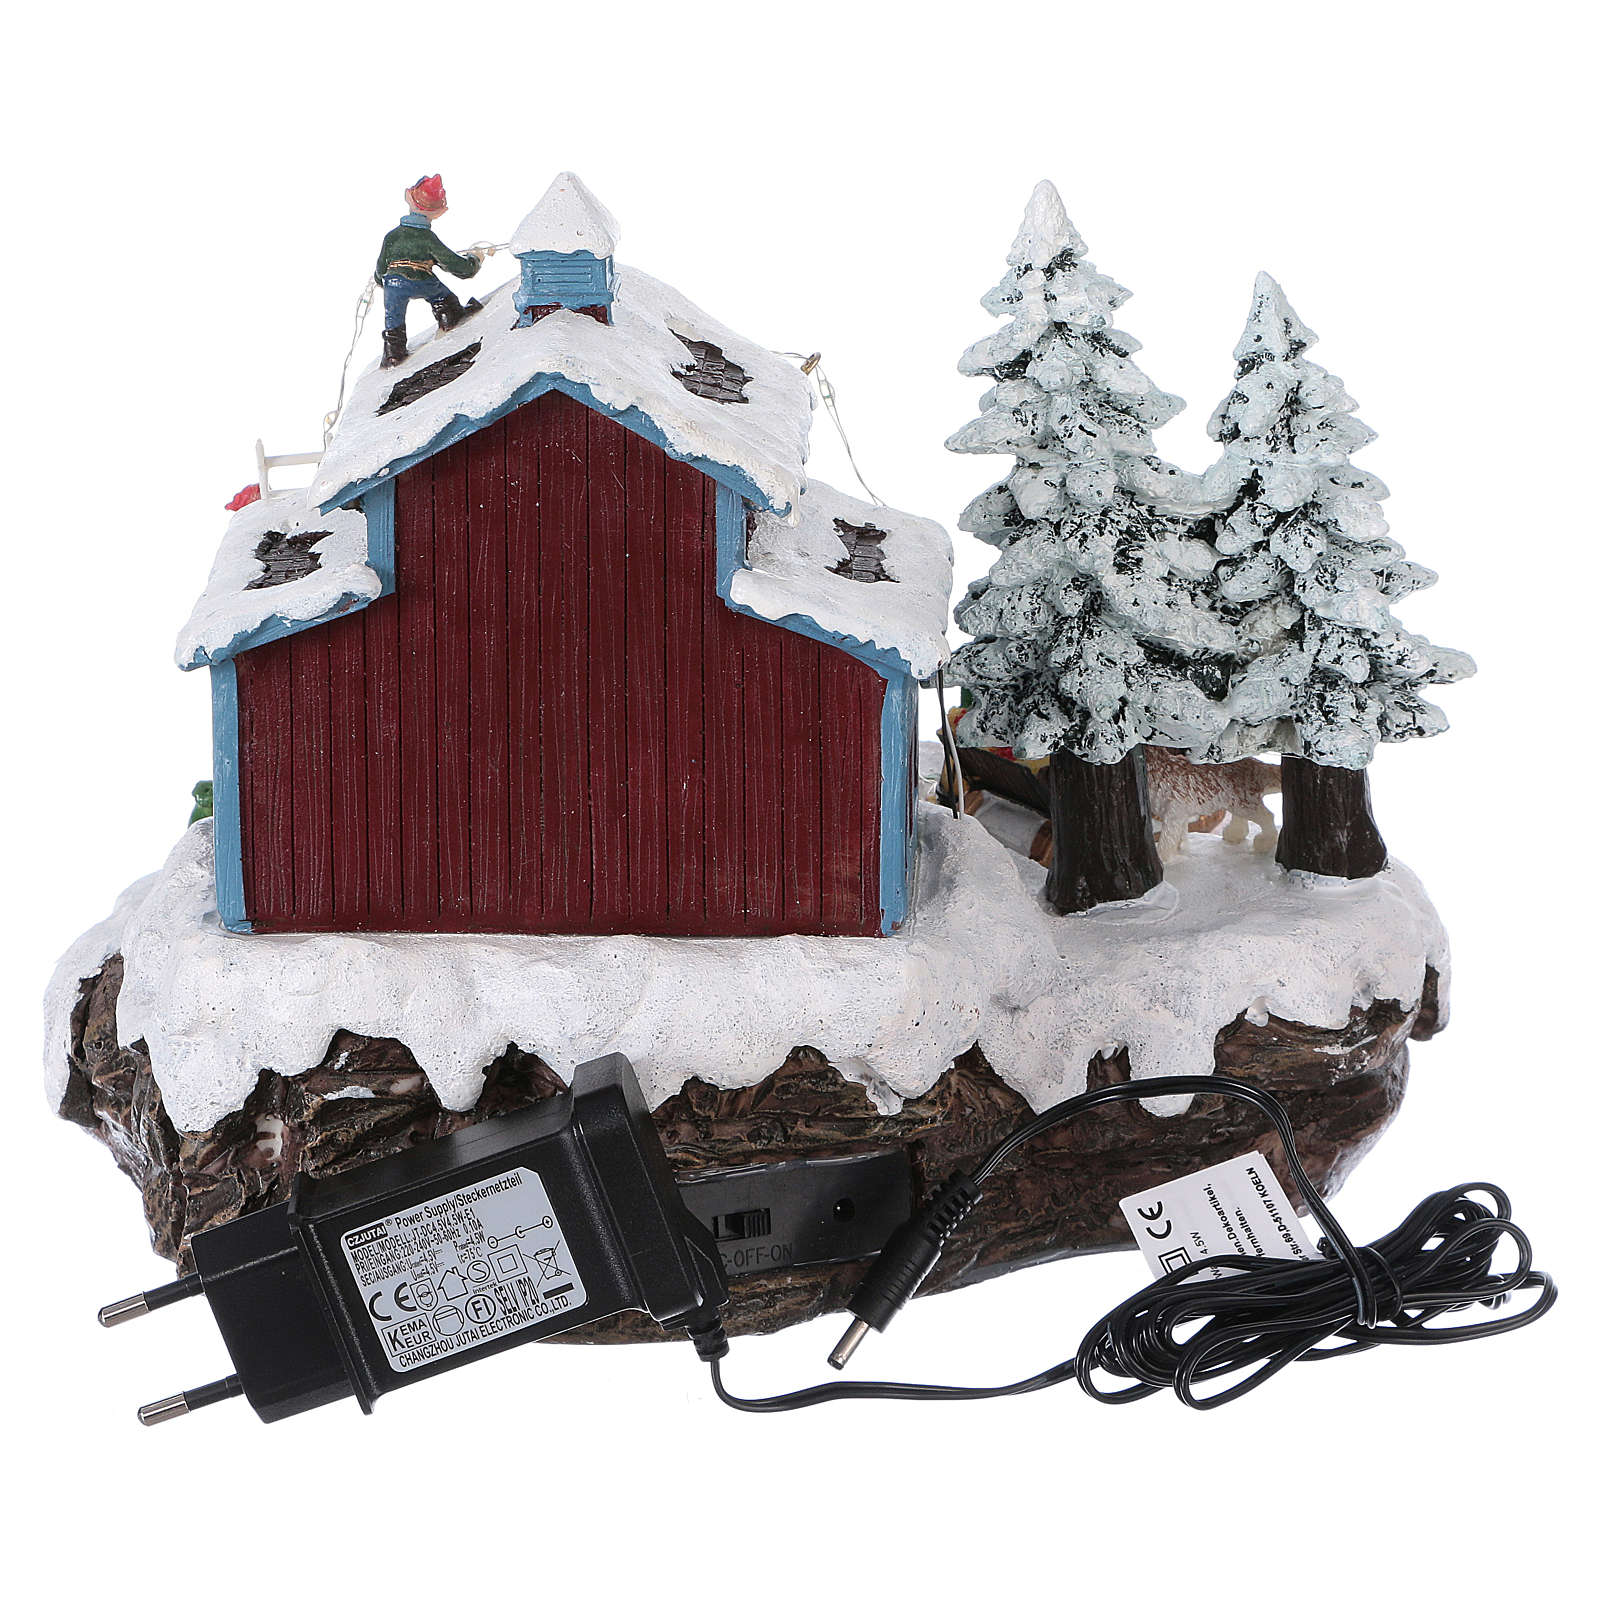 Santa Claus Christmas Village with Gifts 20x25x20 cm lights motion music electric powered 3